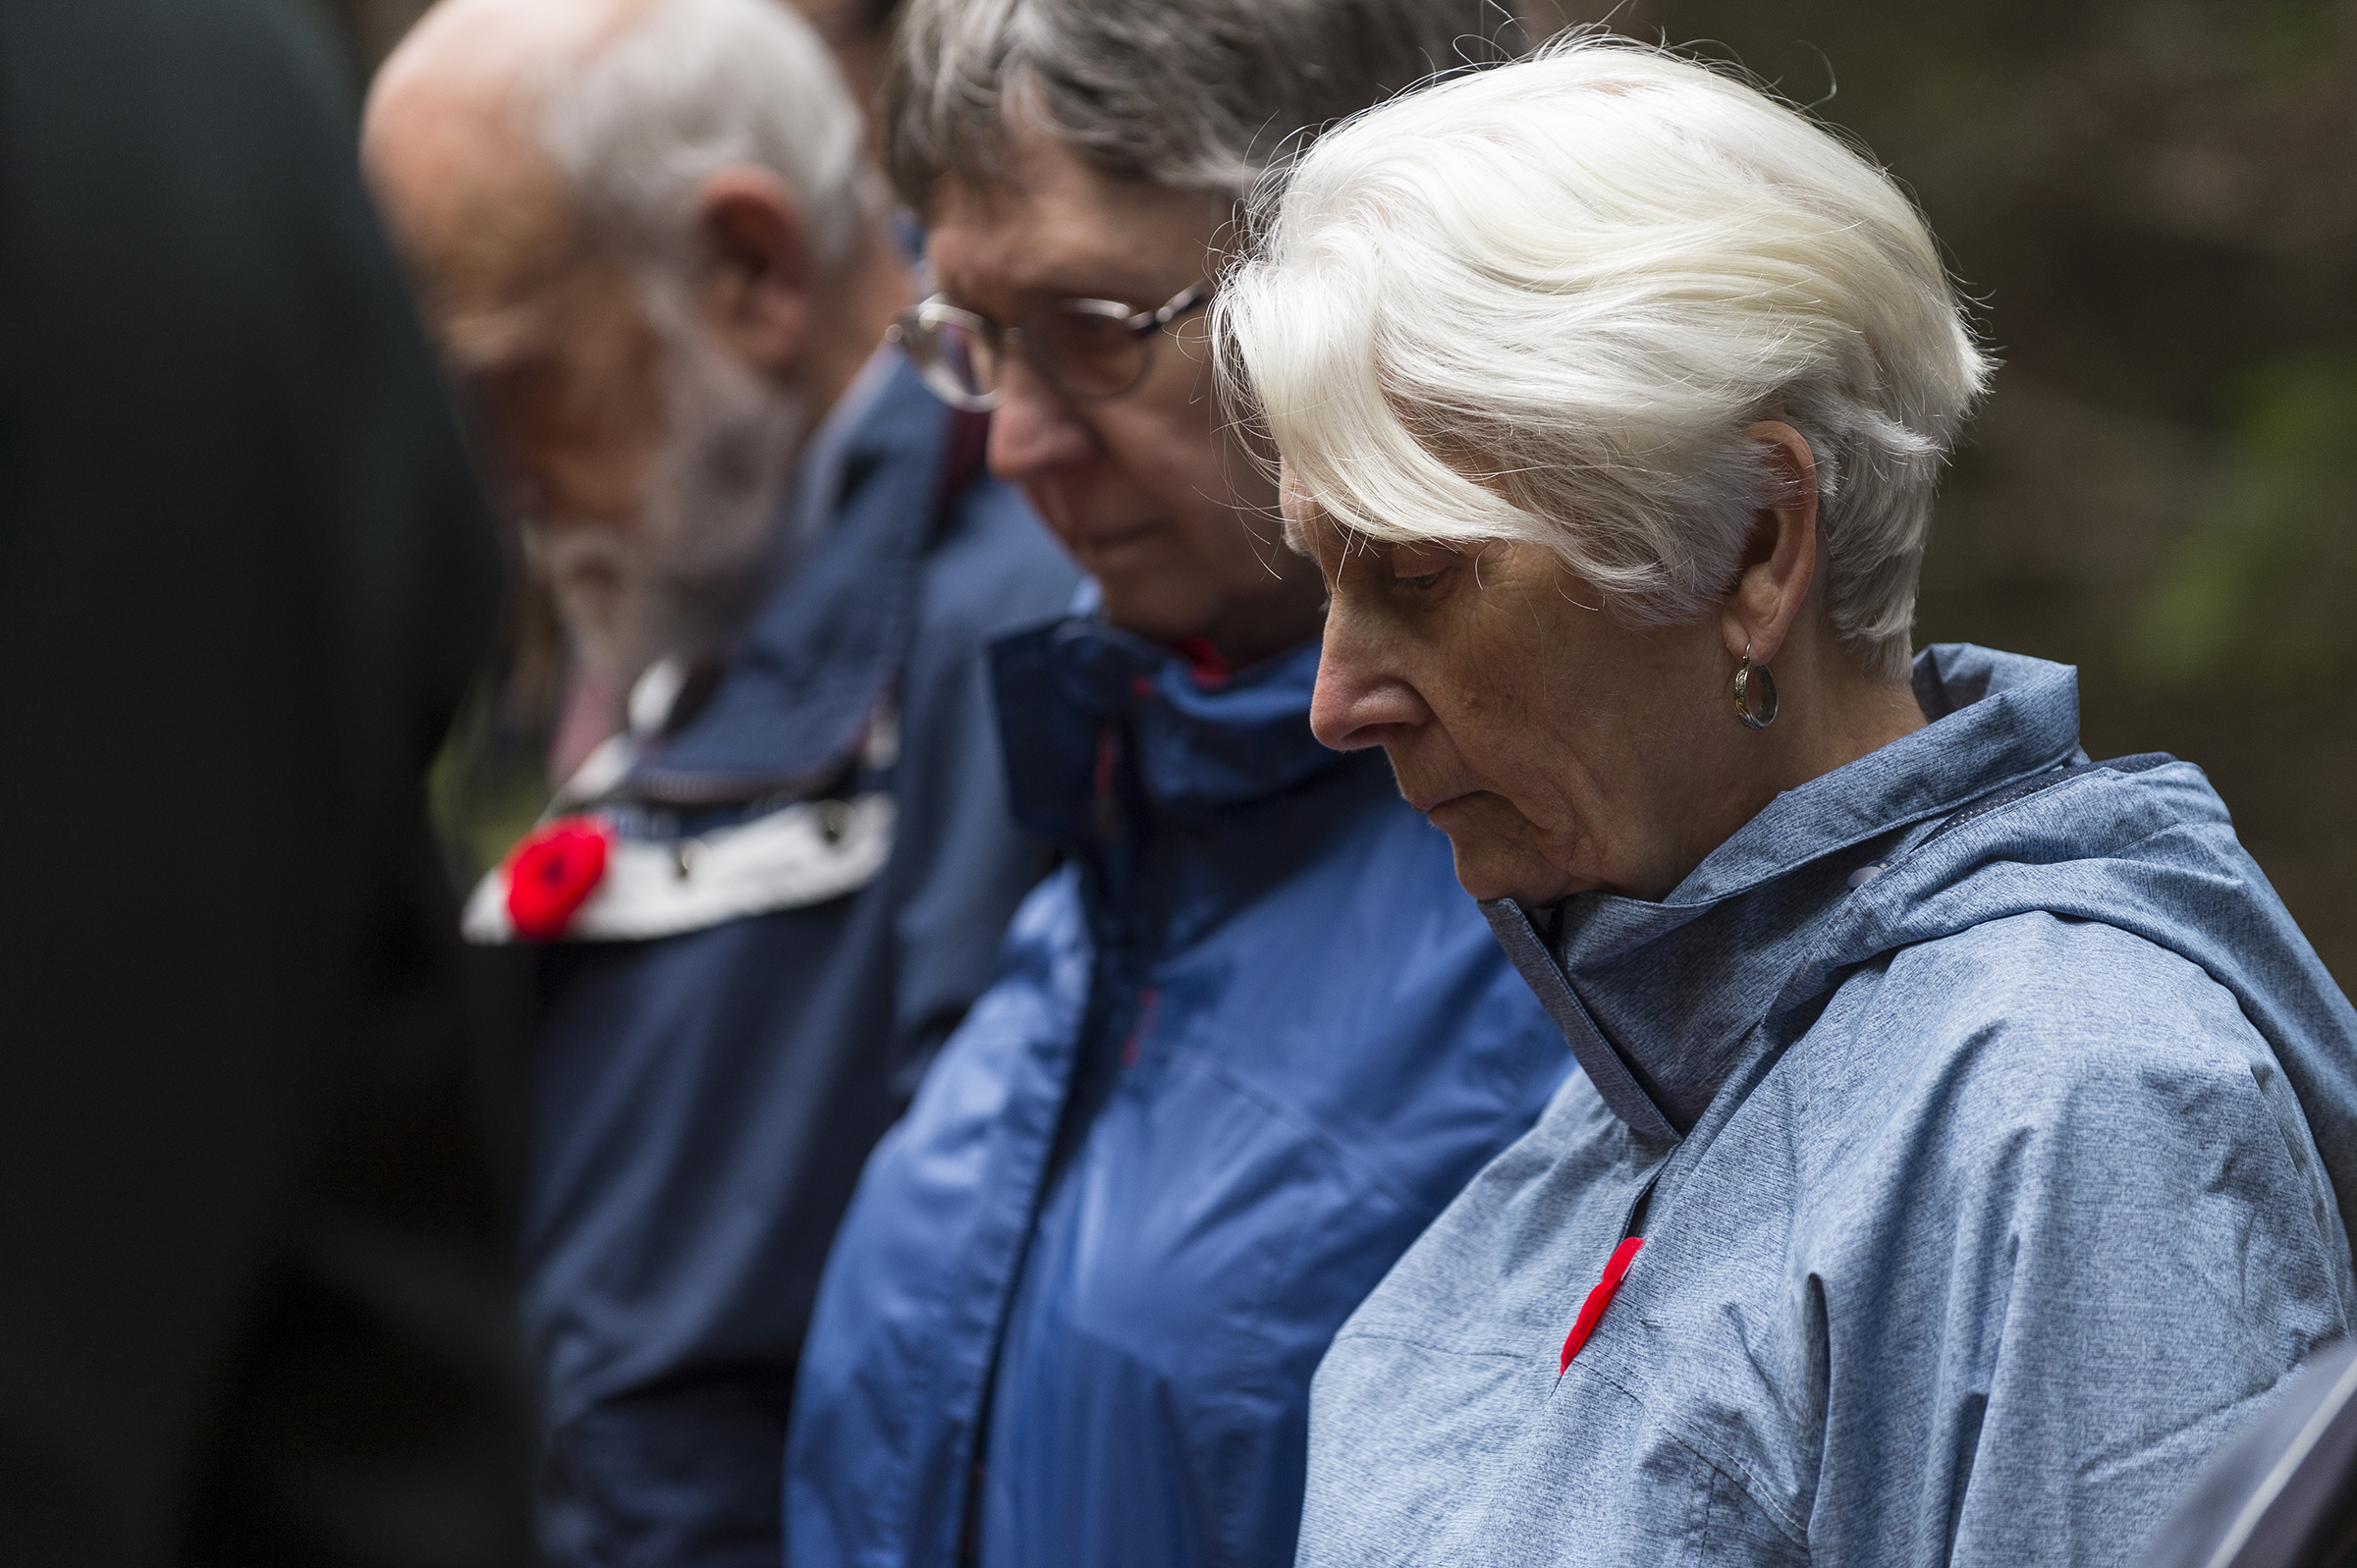 On September 14, 2019, (from right) siblings Shirley Routliffe, Lynda Diepold, and Walter Bateson attend the ceremony marking the 80th anniversary of the Northrop Delta 673 crash that claimed the lives of Warrant Officer Class 2 James Edward Doan and their uncle, Corporal David Alexander Rennie, on September 14, 1939. PHOTO: Corporal Nicolas Alonso, GN02-2019-0949-011